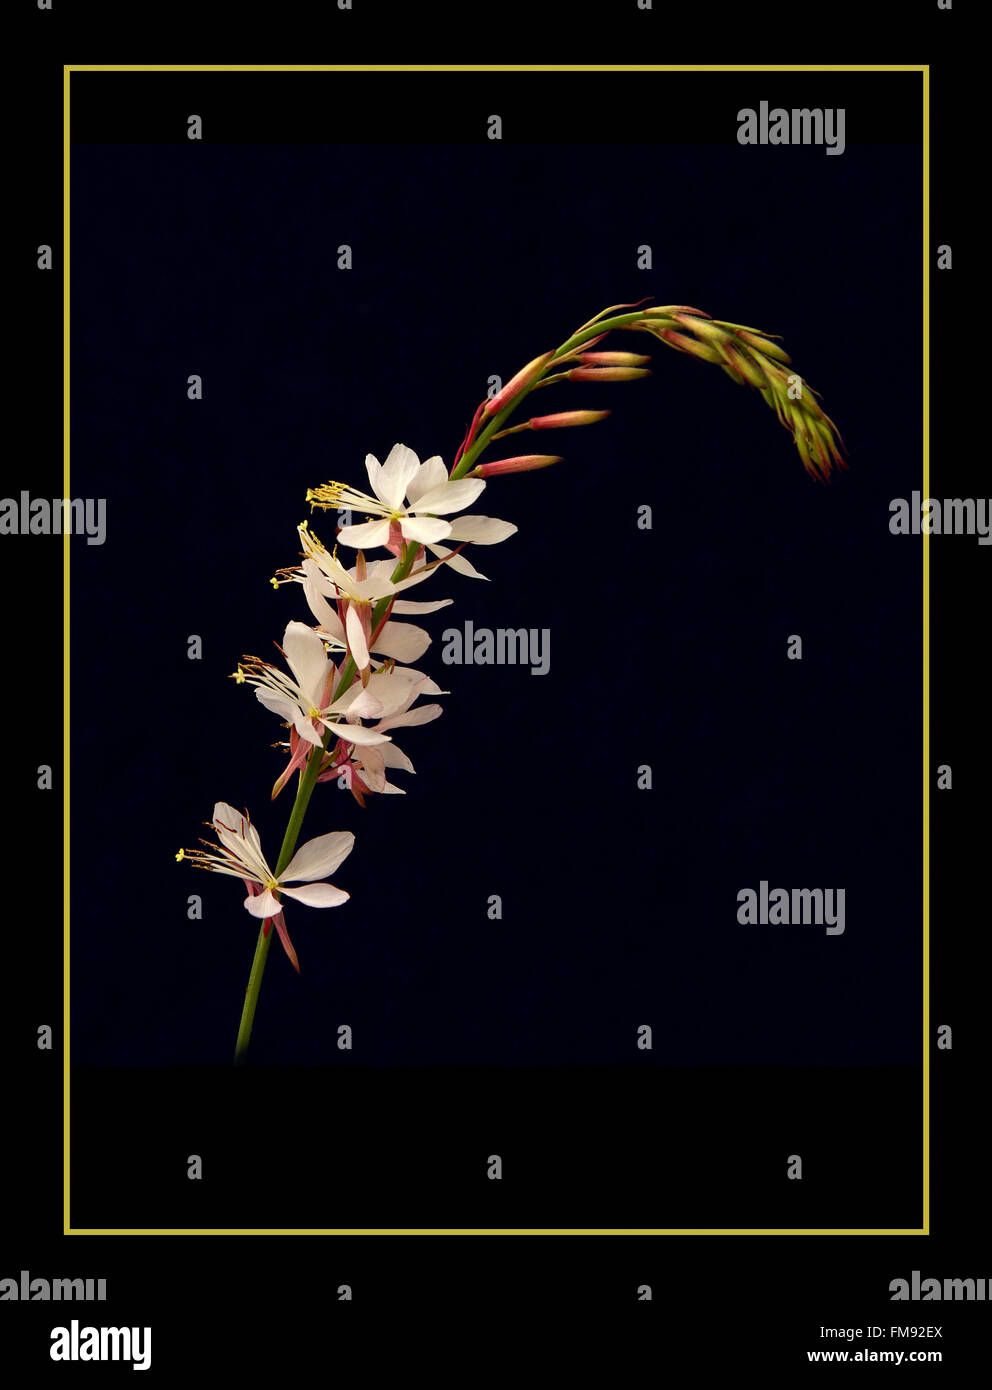 Gaura 'The Bride' - Stock Image